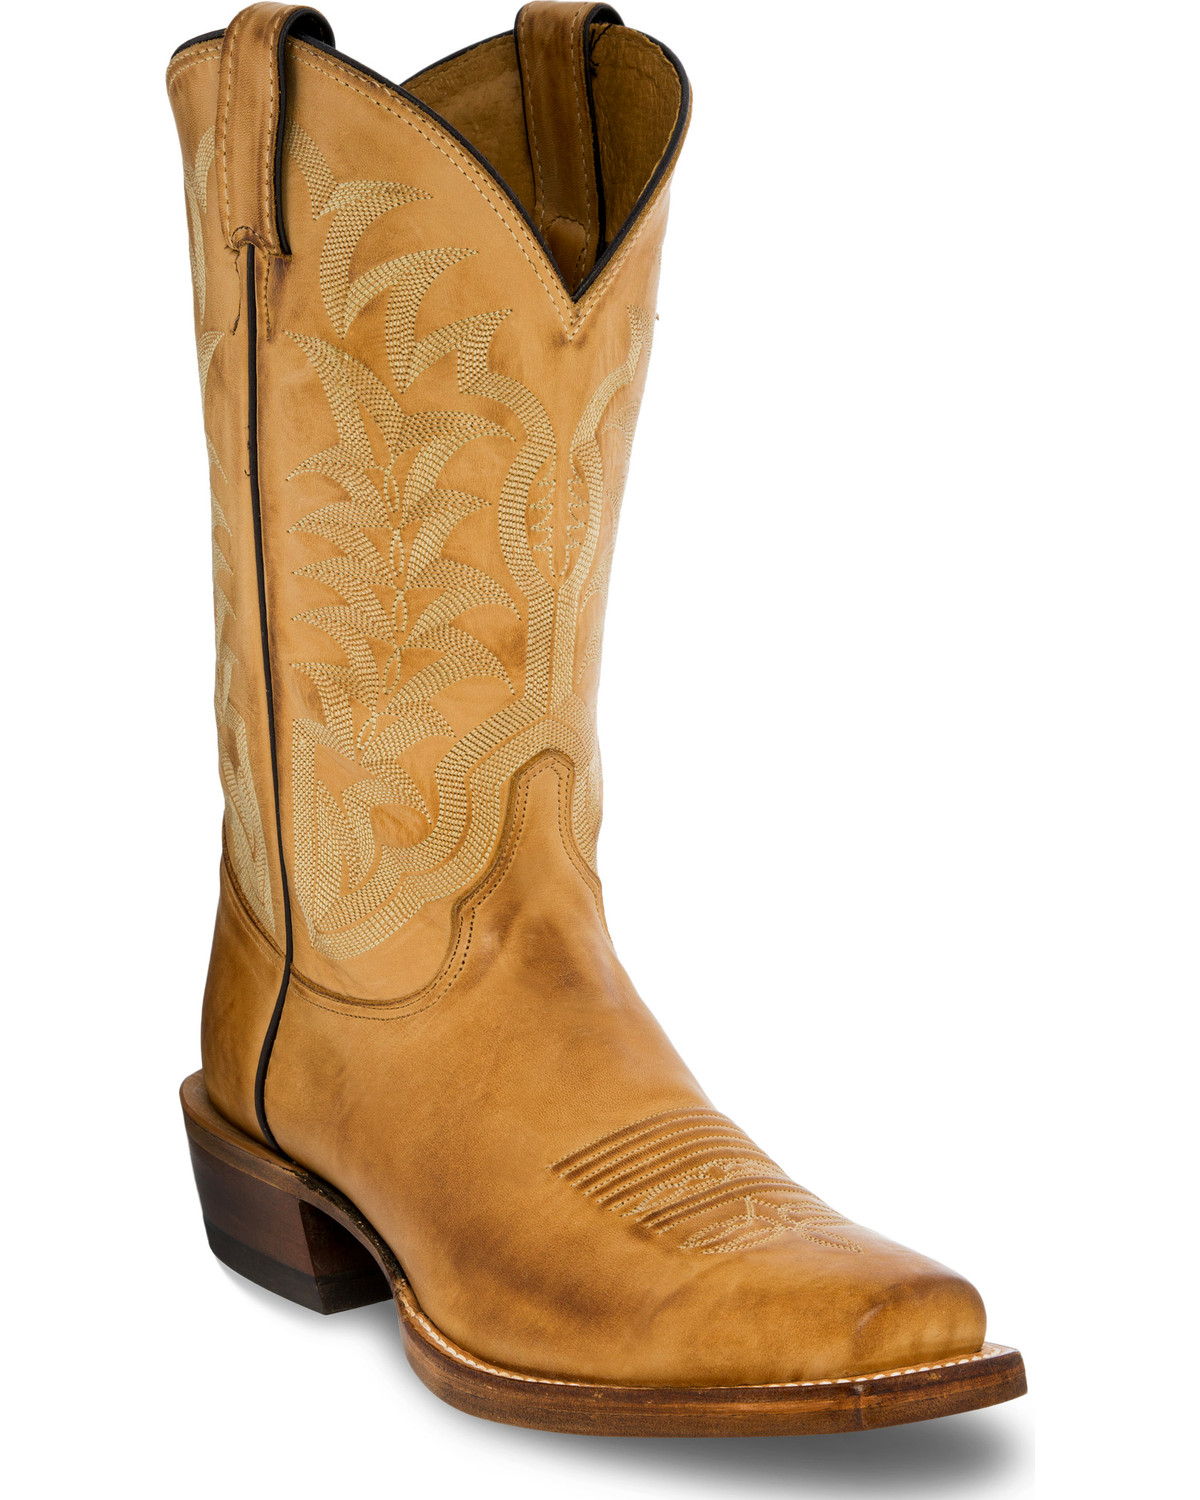 4fcd8c3b3b6 Justin Men's Distressed Light Brown Leather Cowboy Boots - Square Toe